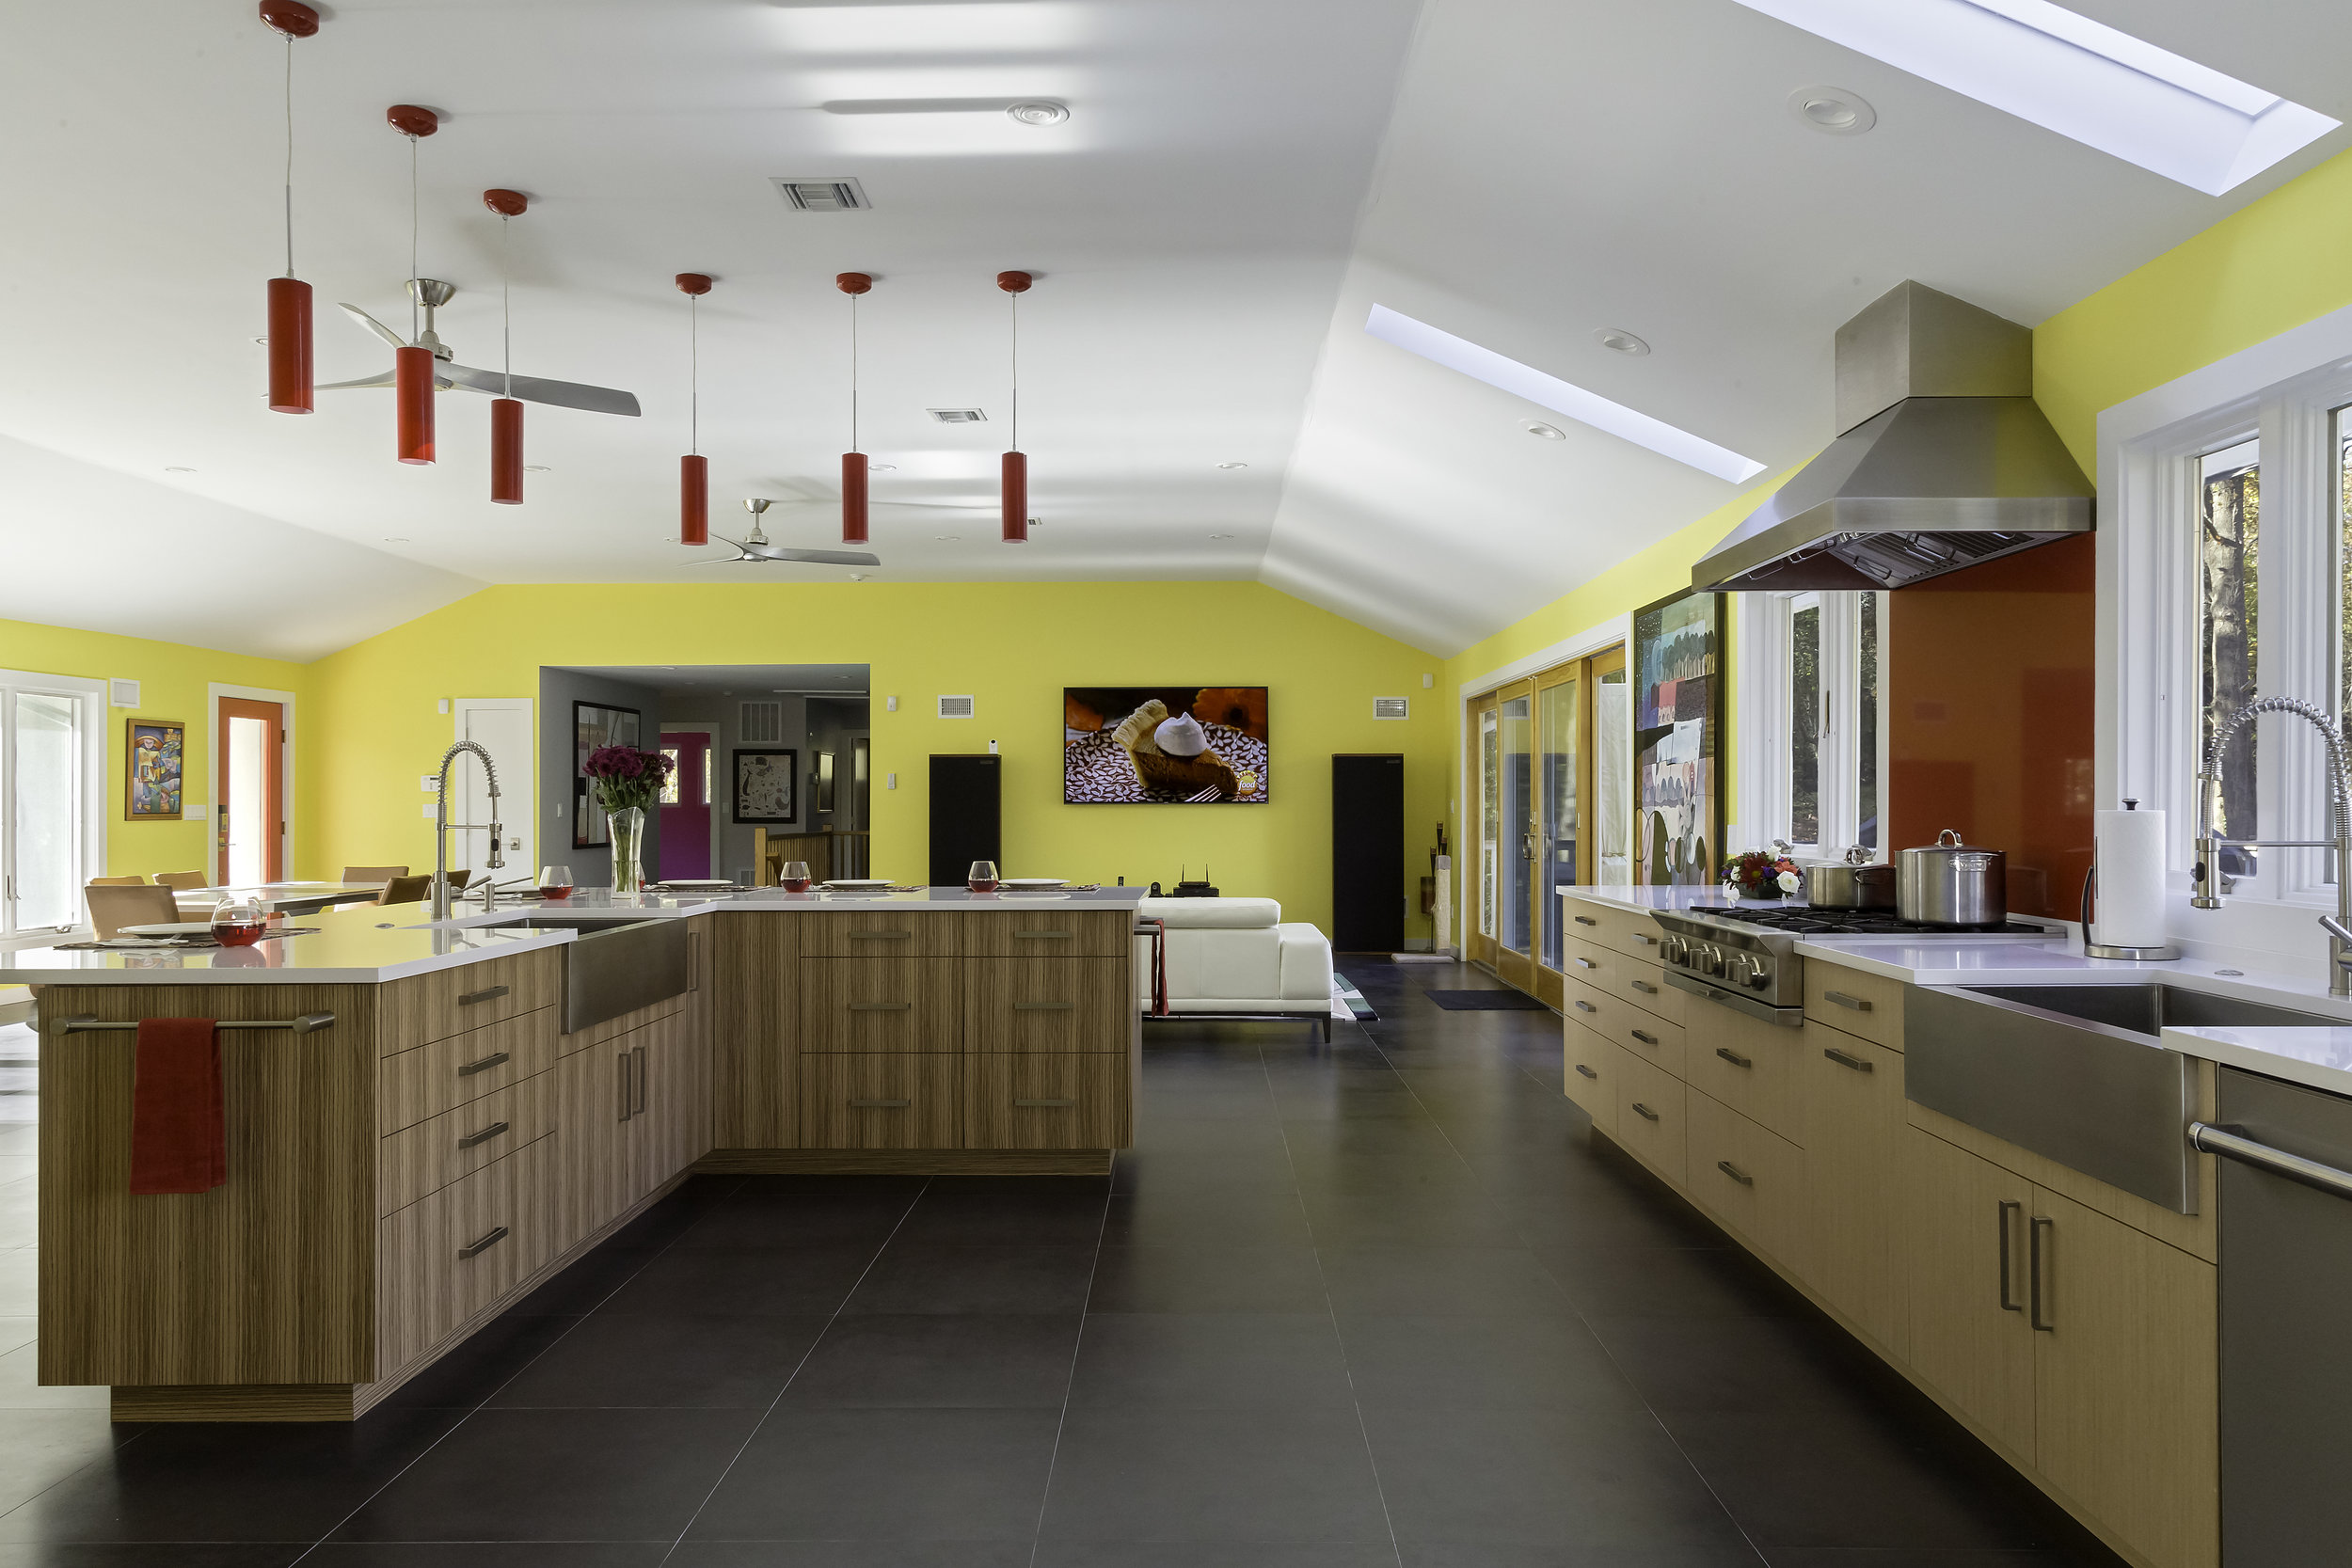 Contemporary style kitchen with six pendant light fixtures